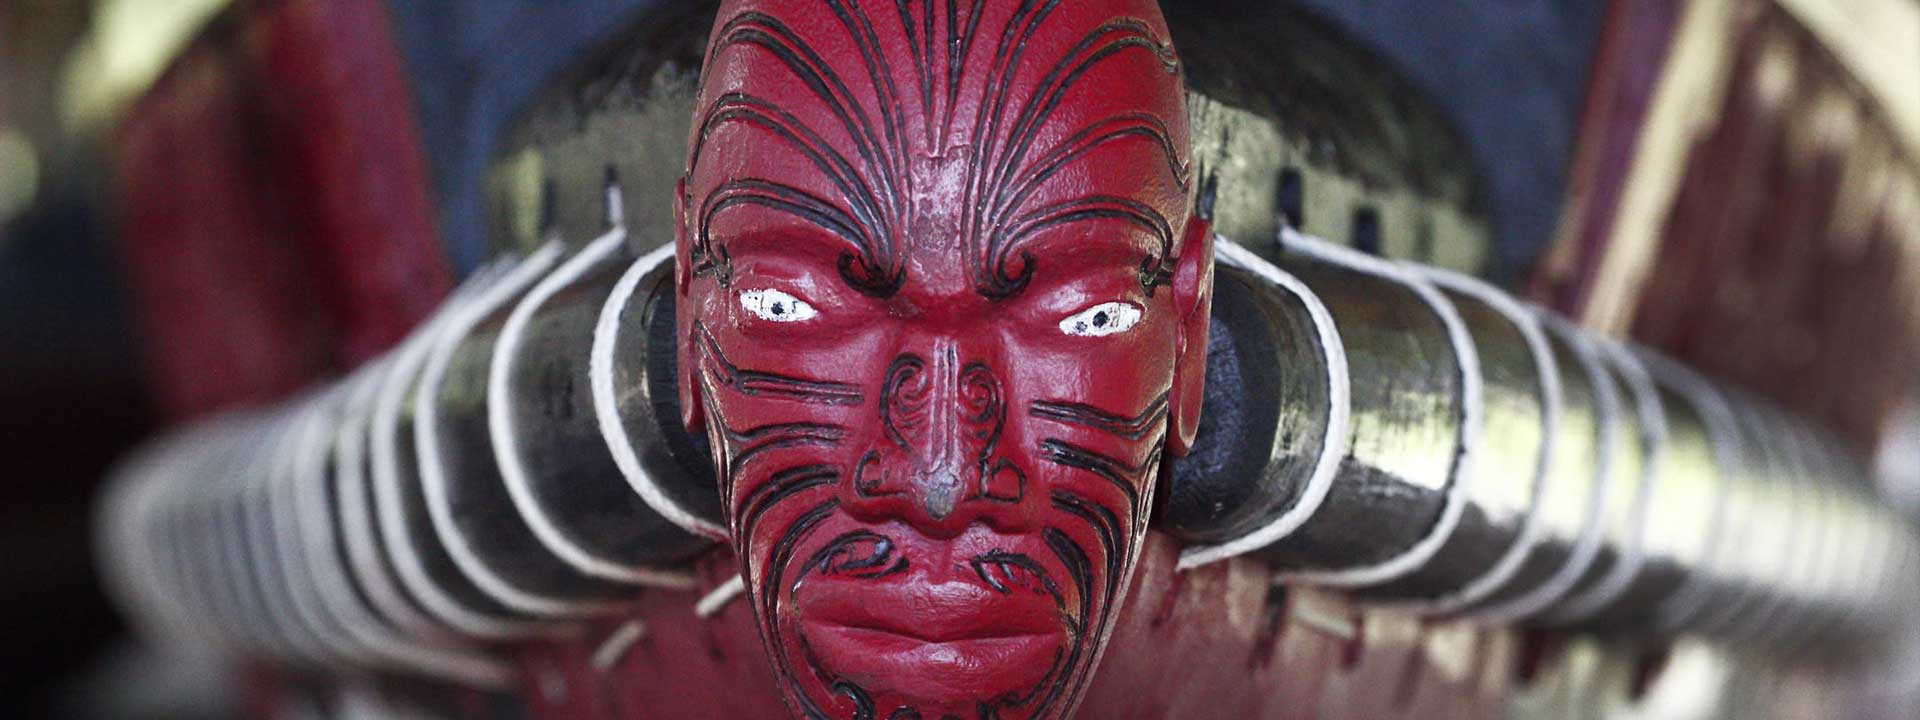 Front of a Maori longboat, carved face painted red with black tattoos. Original photo by Steve Evans.